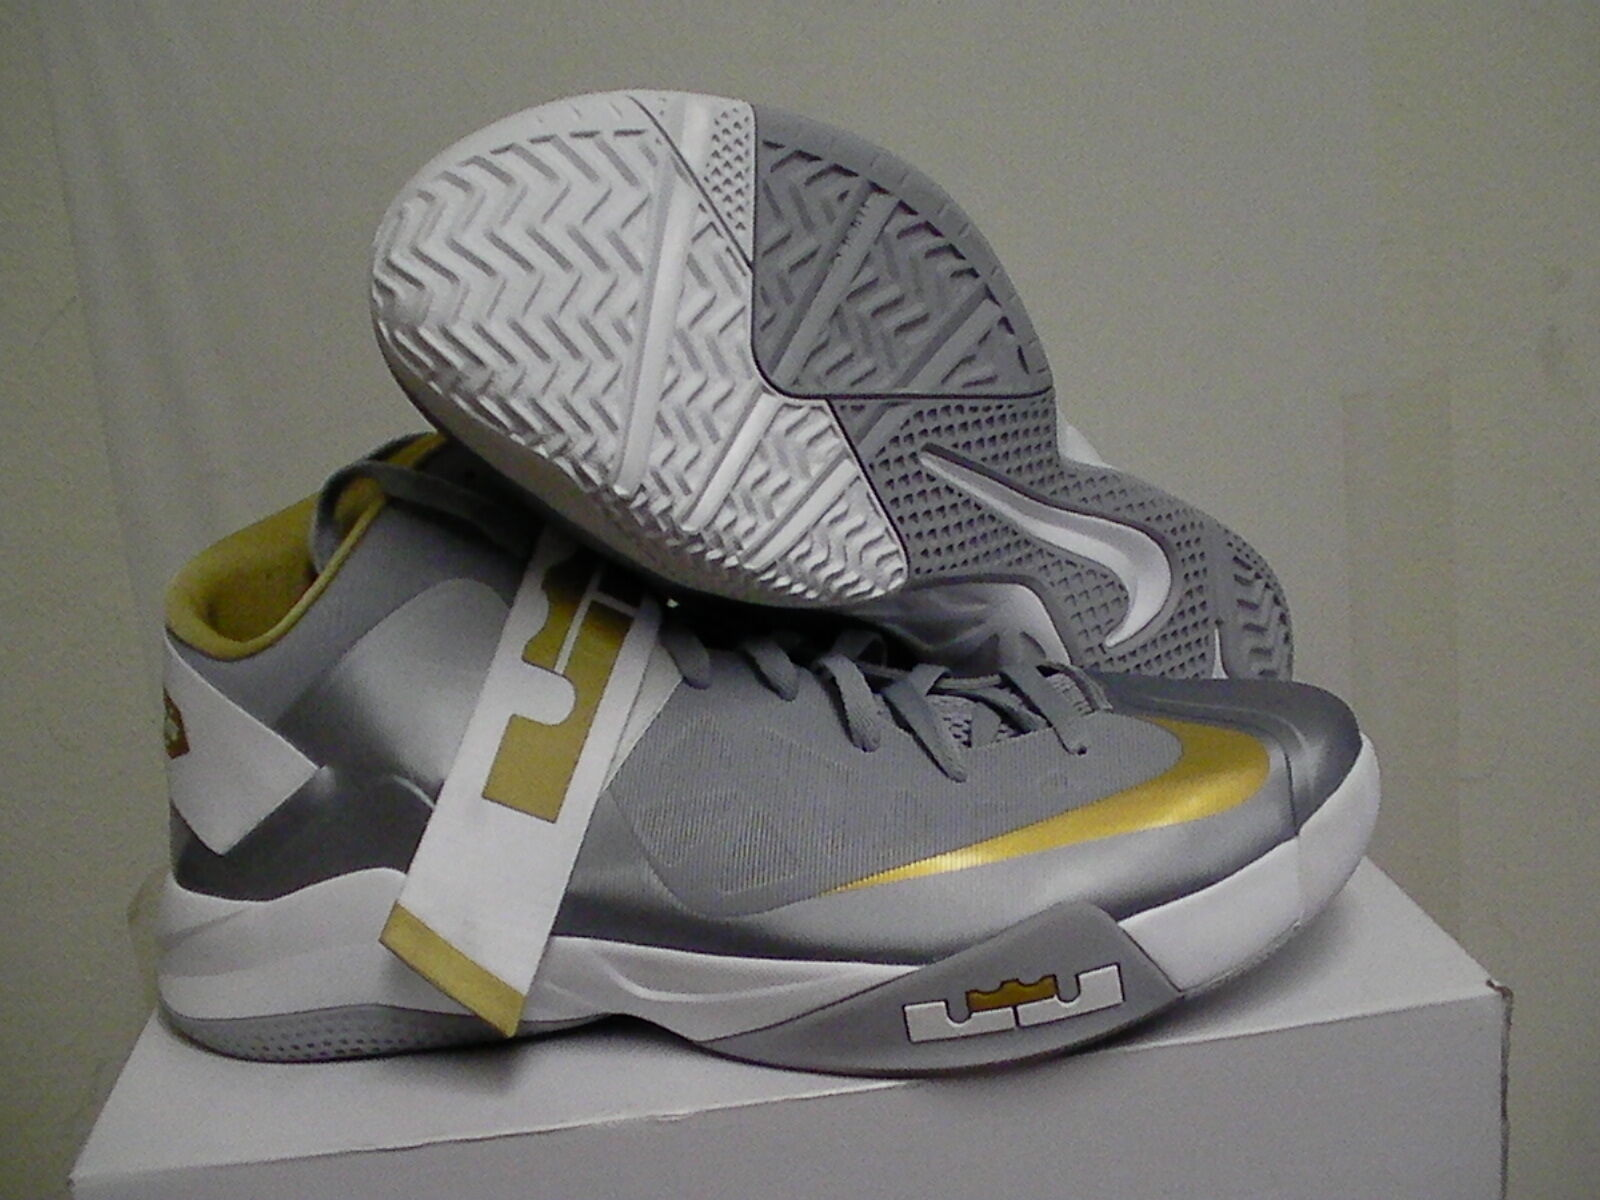 NIKE ZOOM LEBRON JAMES SOLDIER SOLDIER JAMES VI TB Taille 11.5 Gris,gold 39b1c7